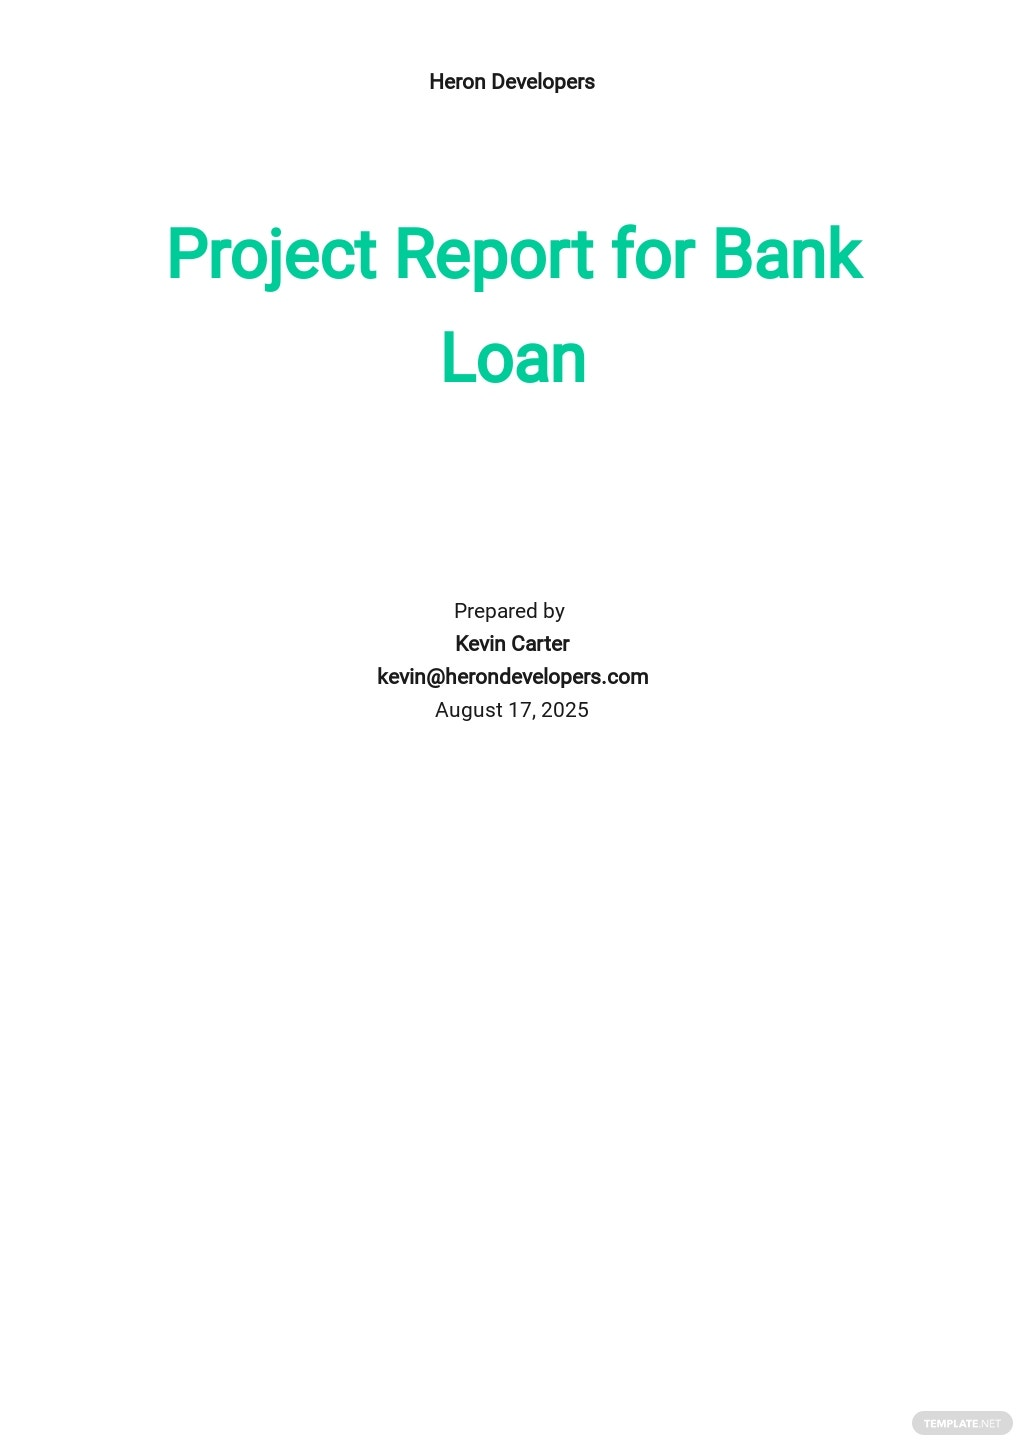 Project Report for Bank Loan Template